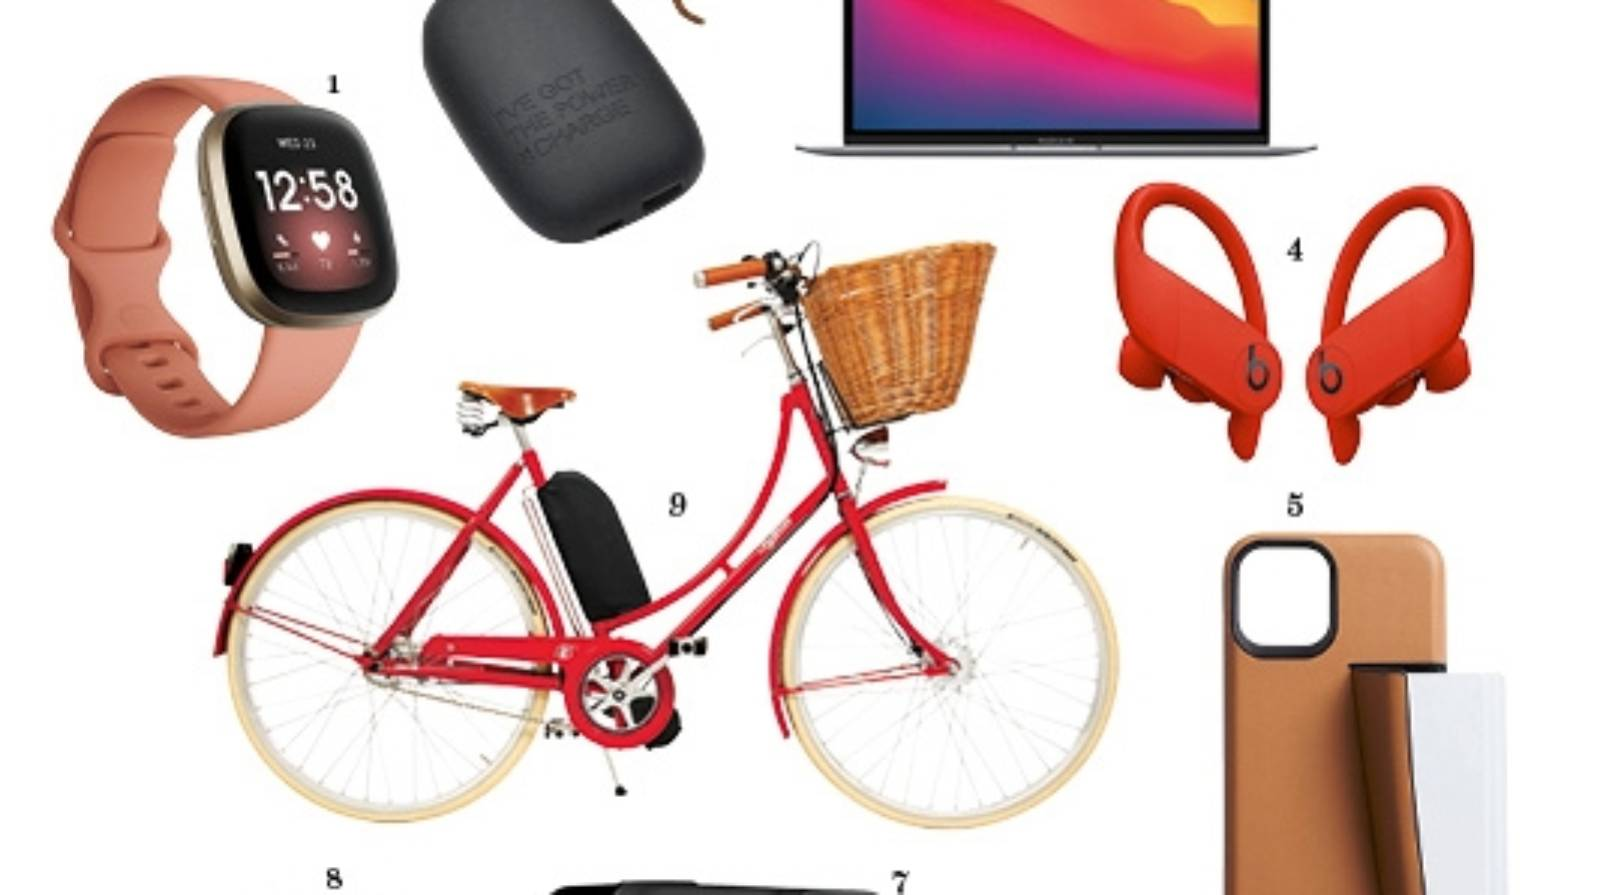 Go-go gadets: Nine pieces of tech for life on the move